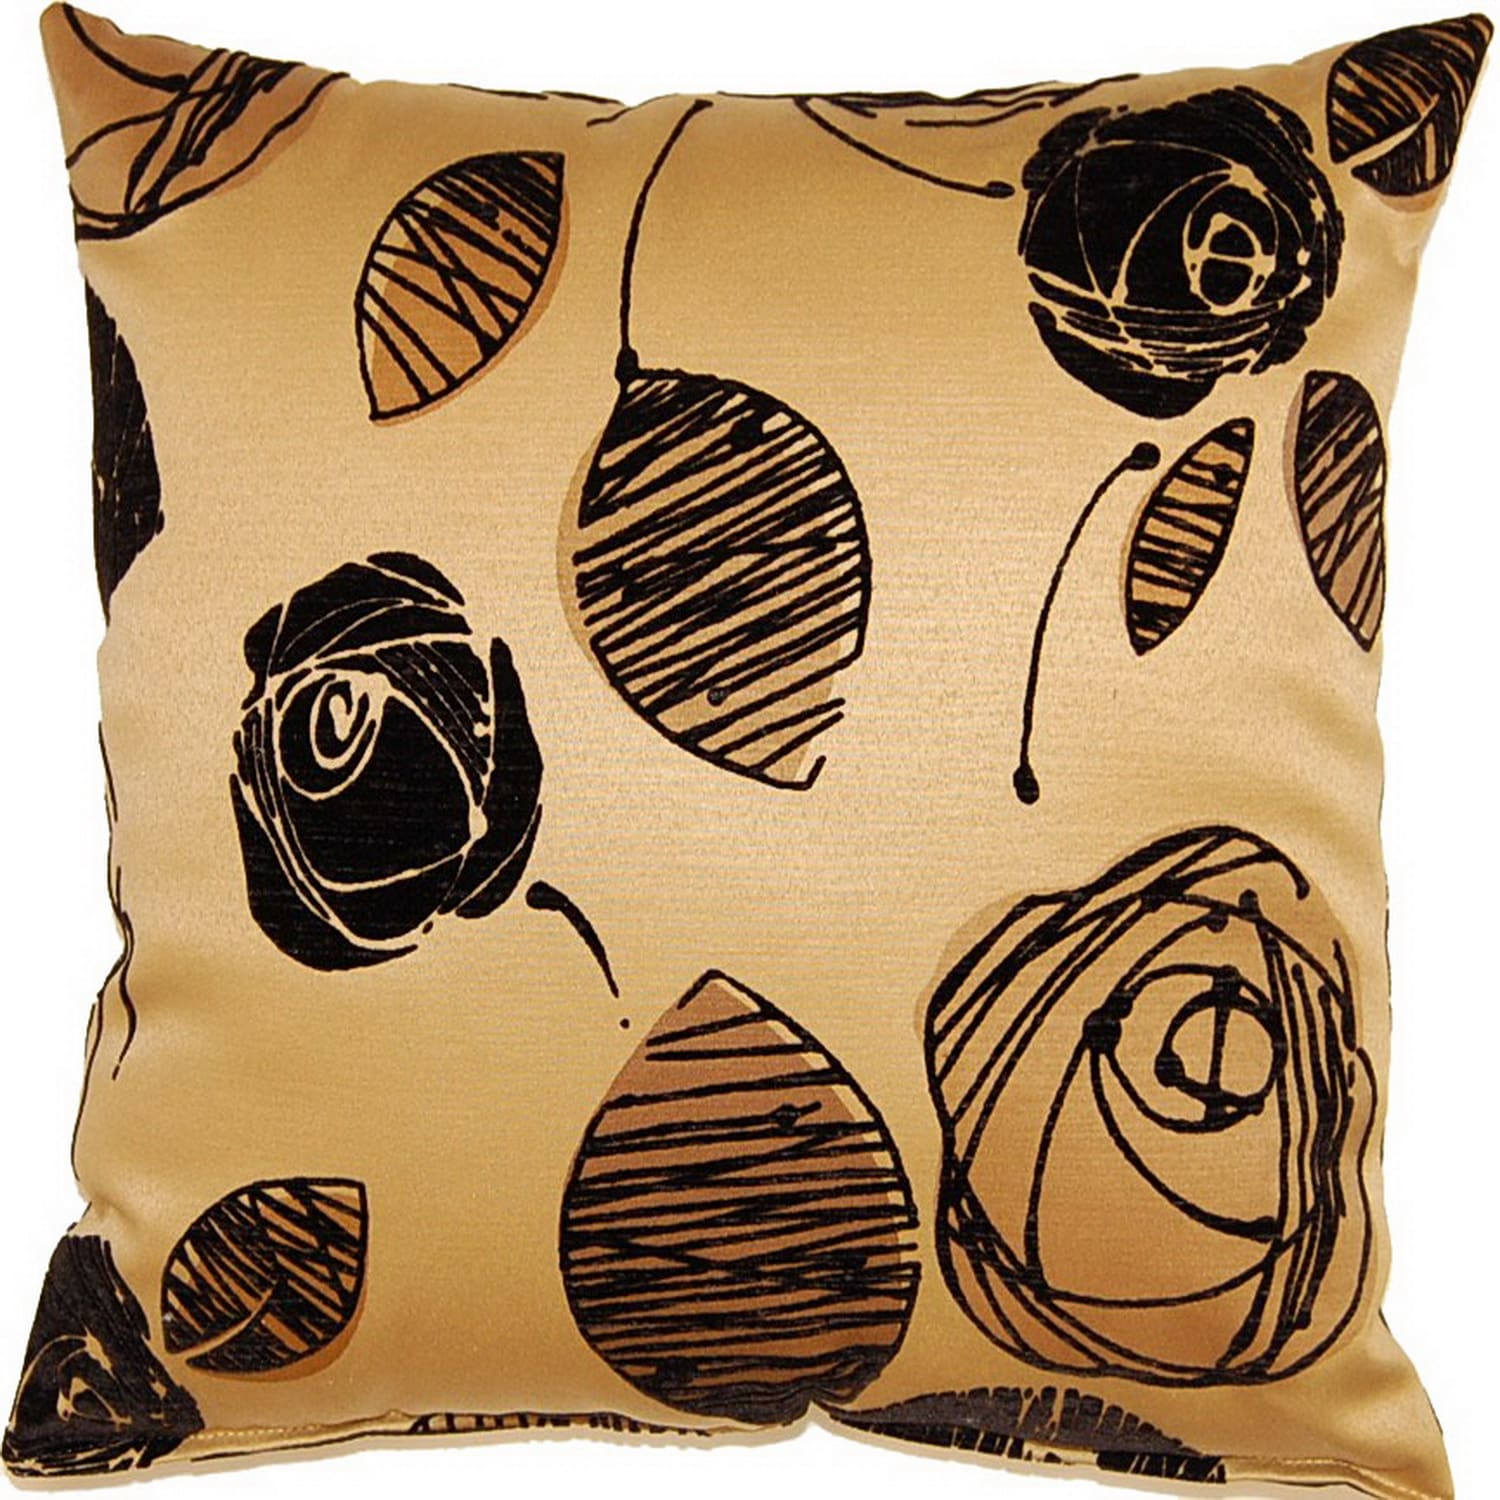 Fox Hill Trading Tory Gold 19-inch Throw Pillows (Set of 2)